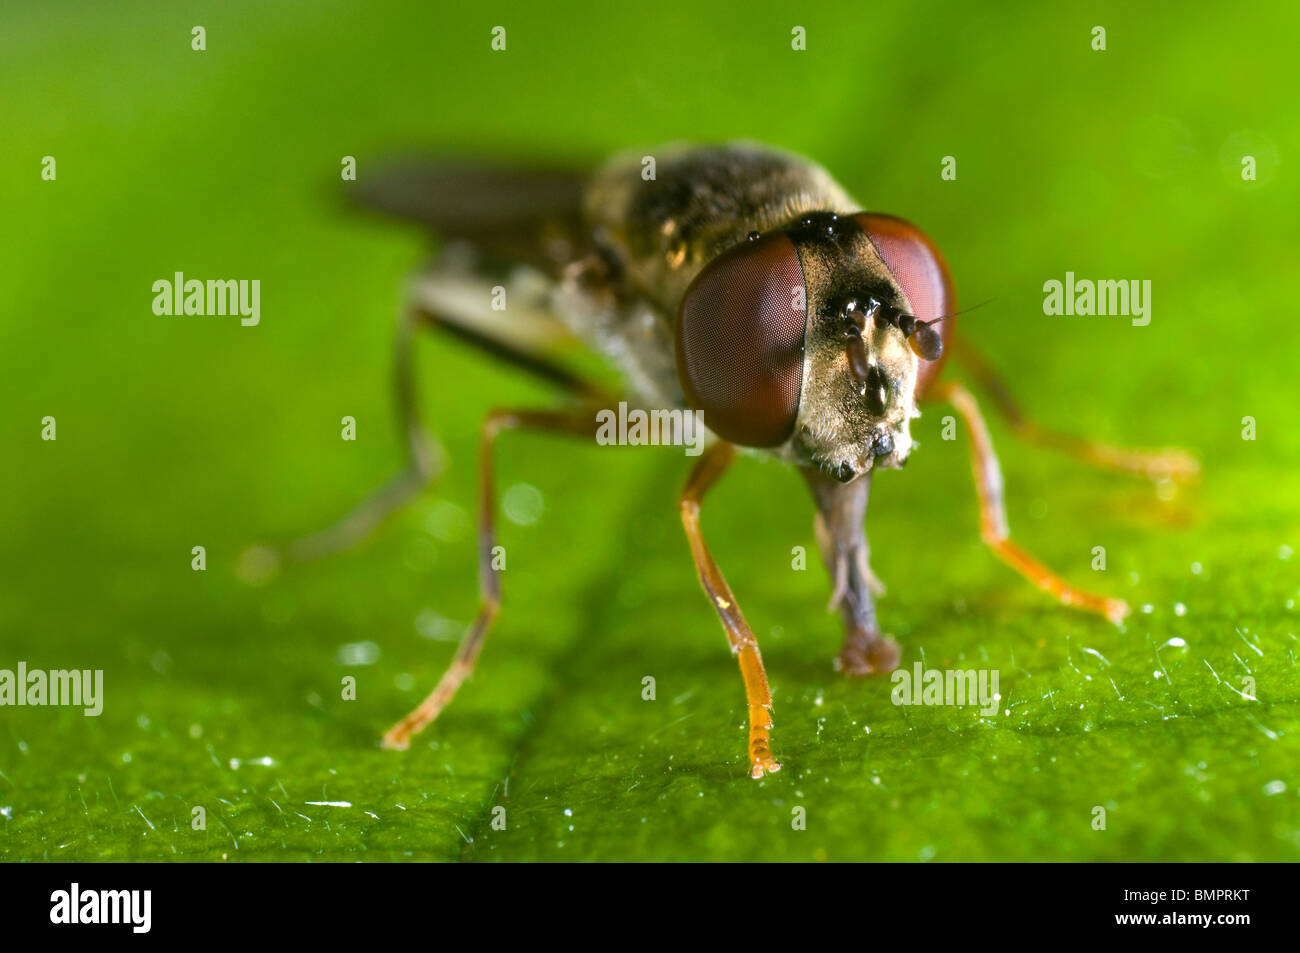 Extreme close up of the head of the syrphid or hover fly, Eupeodes luniger, feeding on a leaf - Stock Image